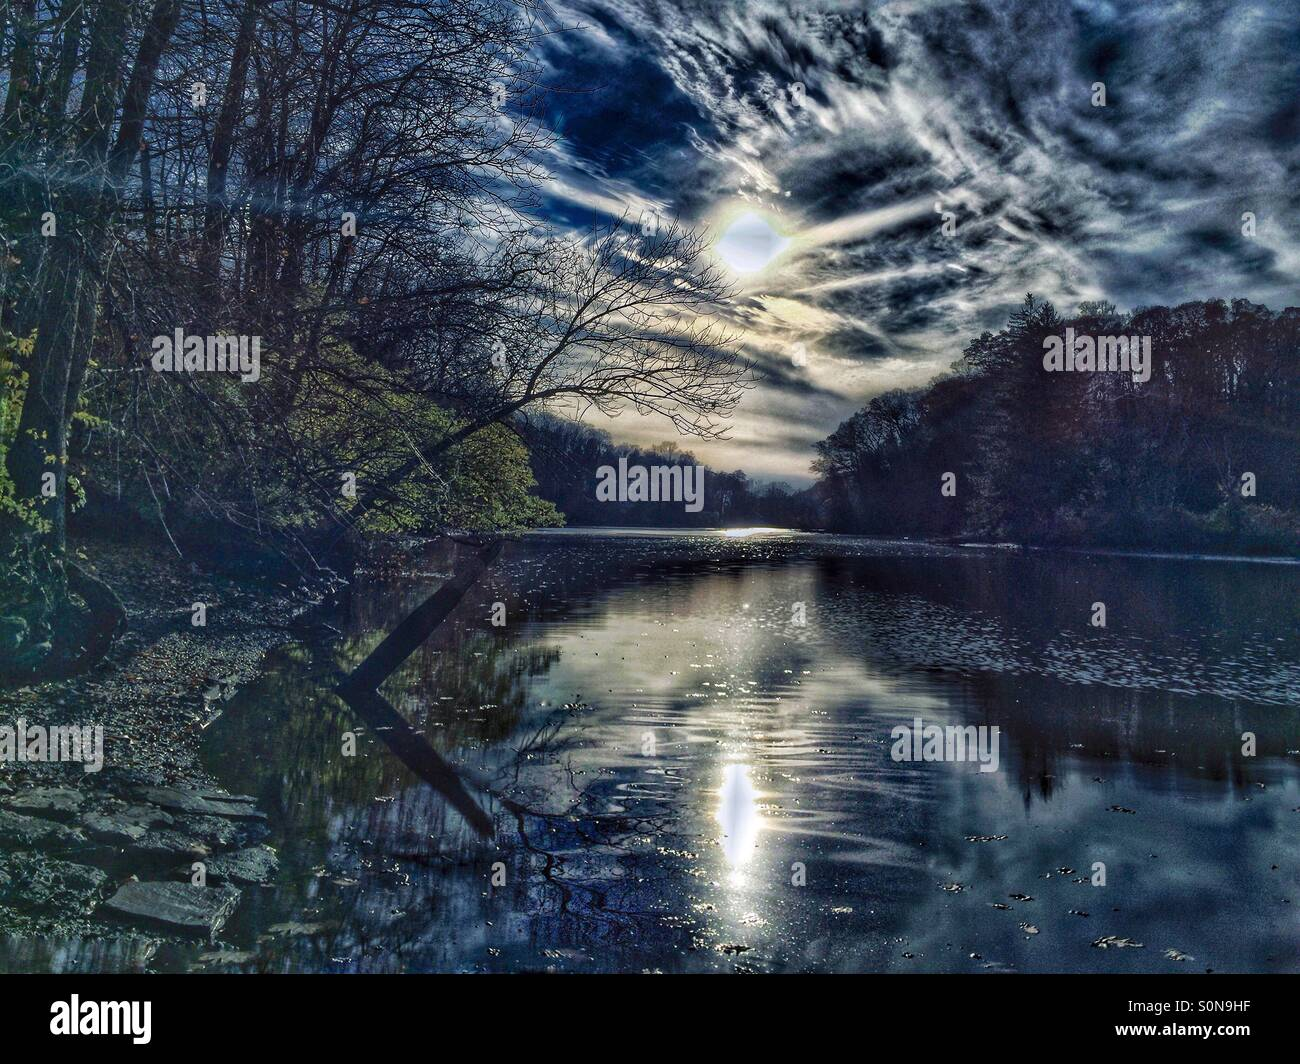 An otherworldly lake - Stock Image